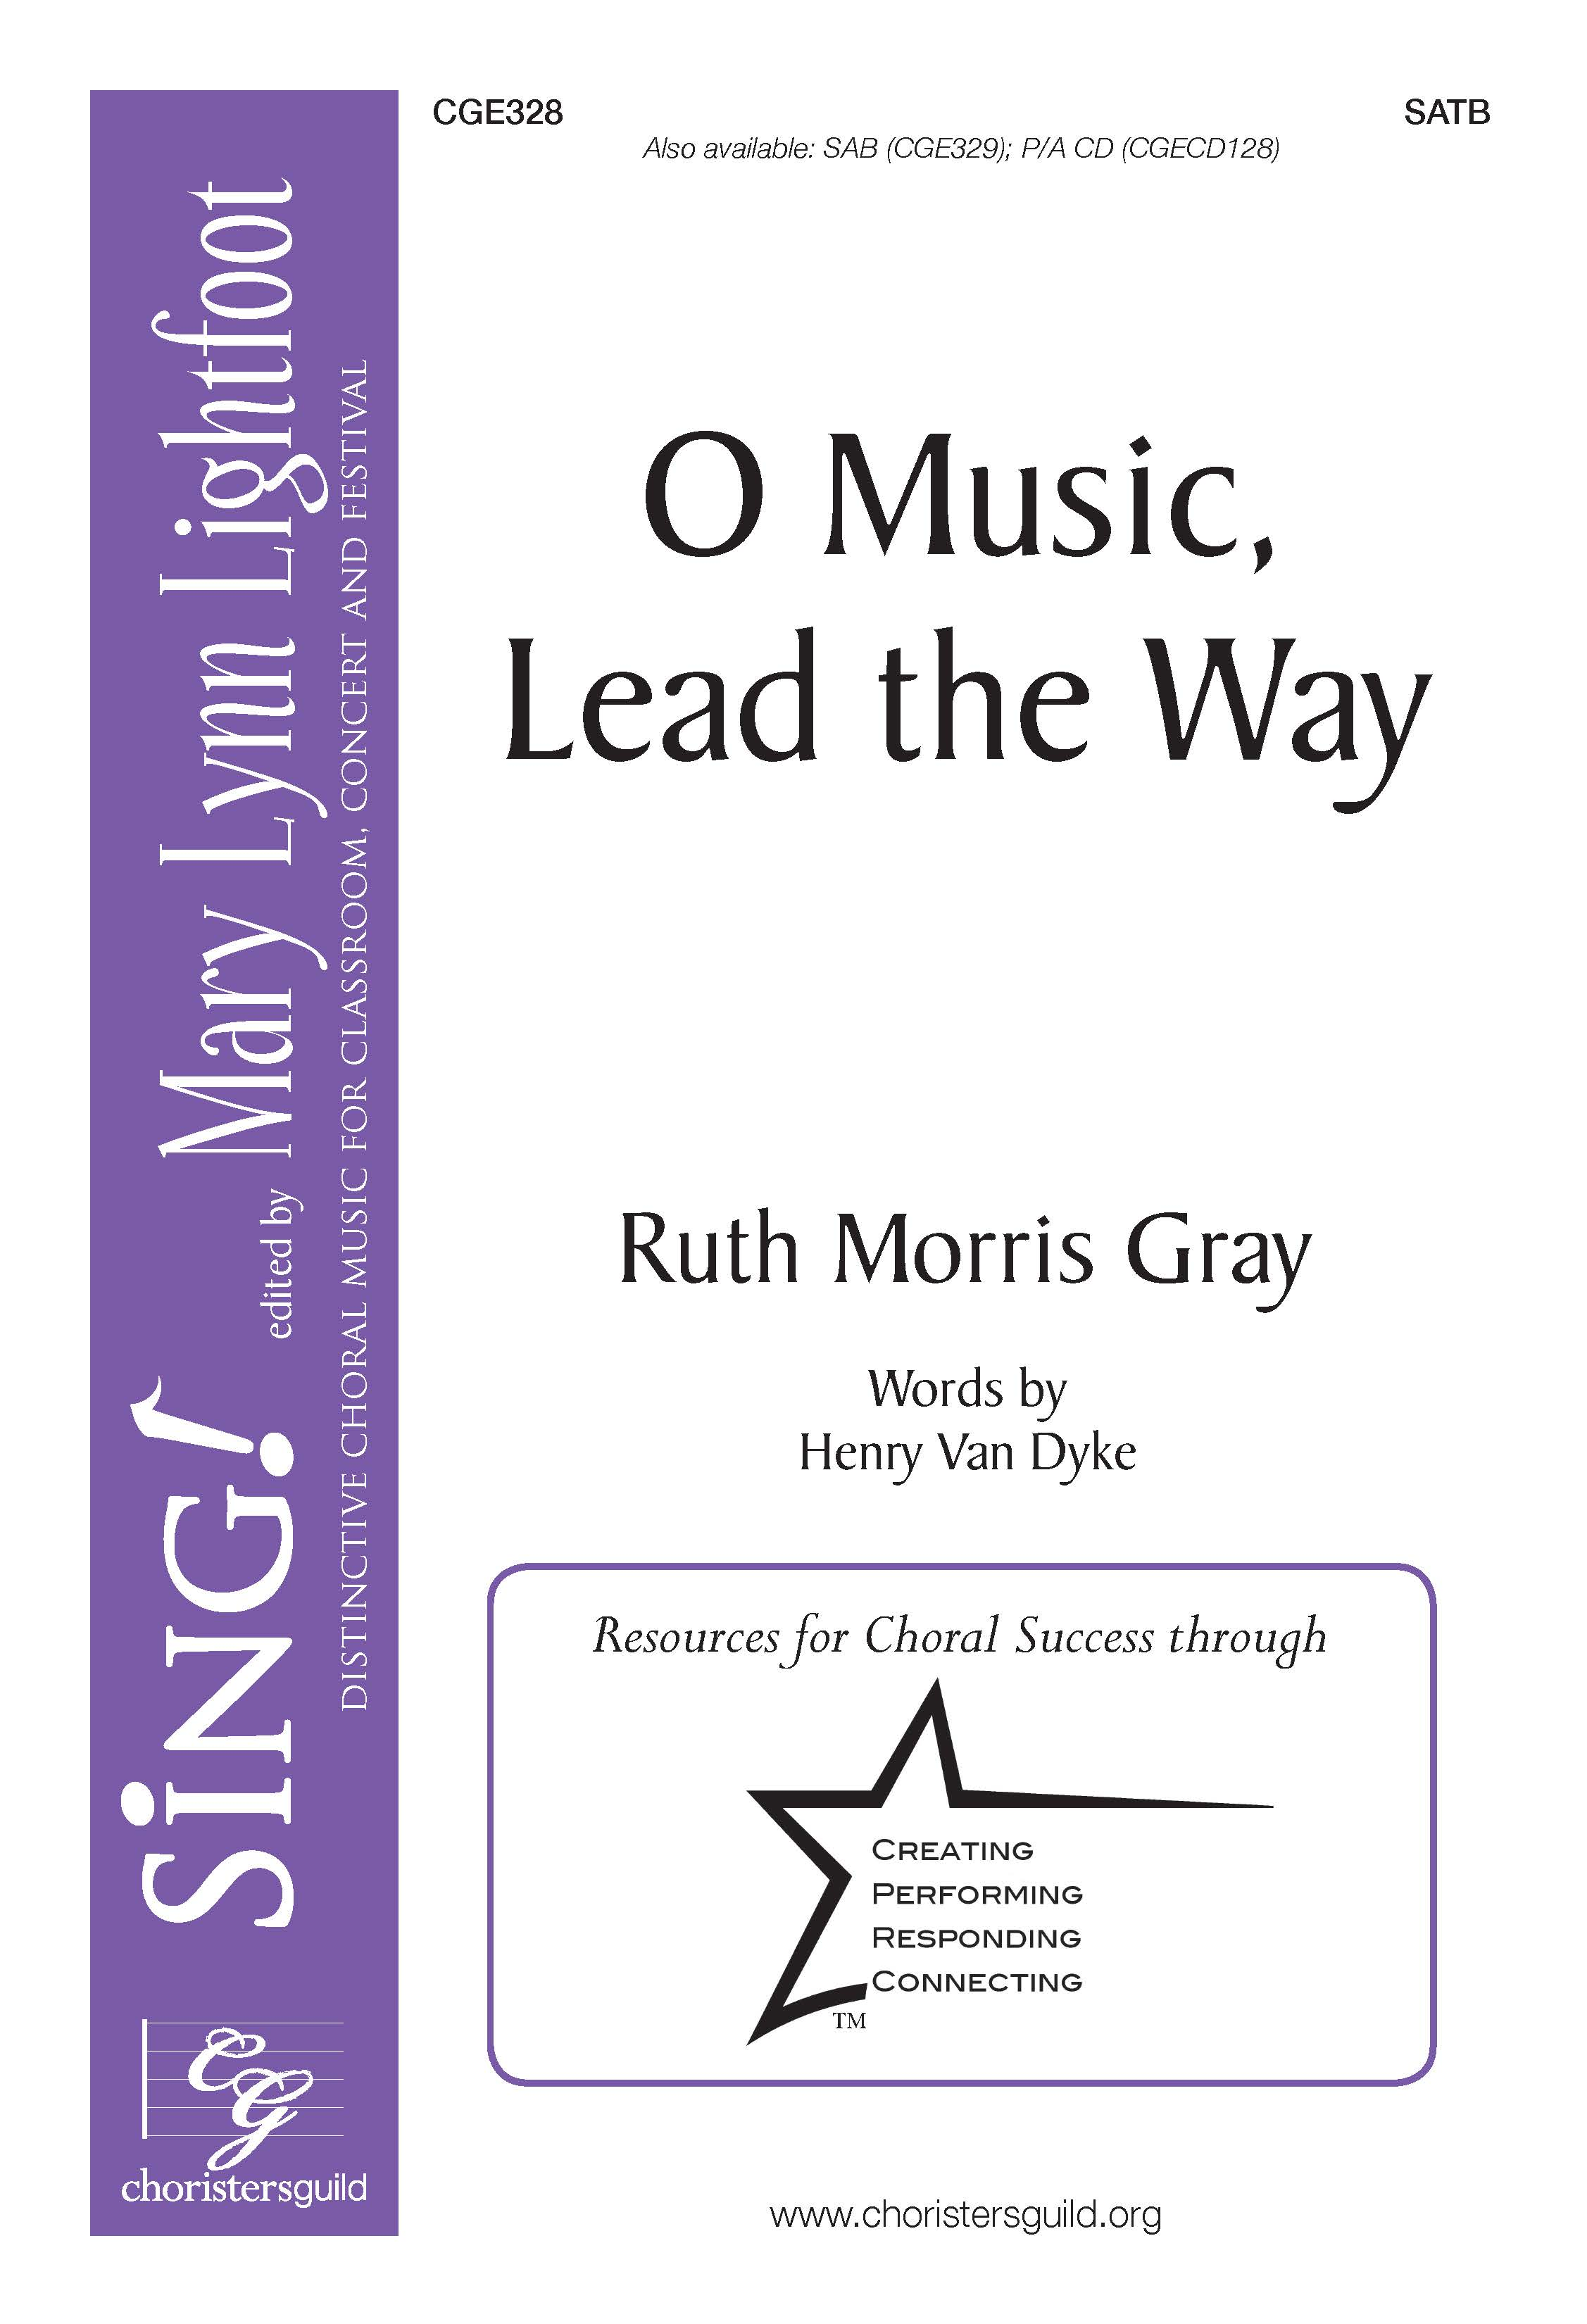 O Music, Lead the Way - SATB